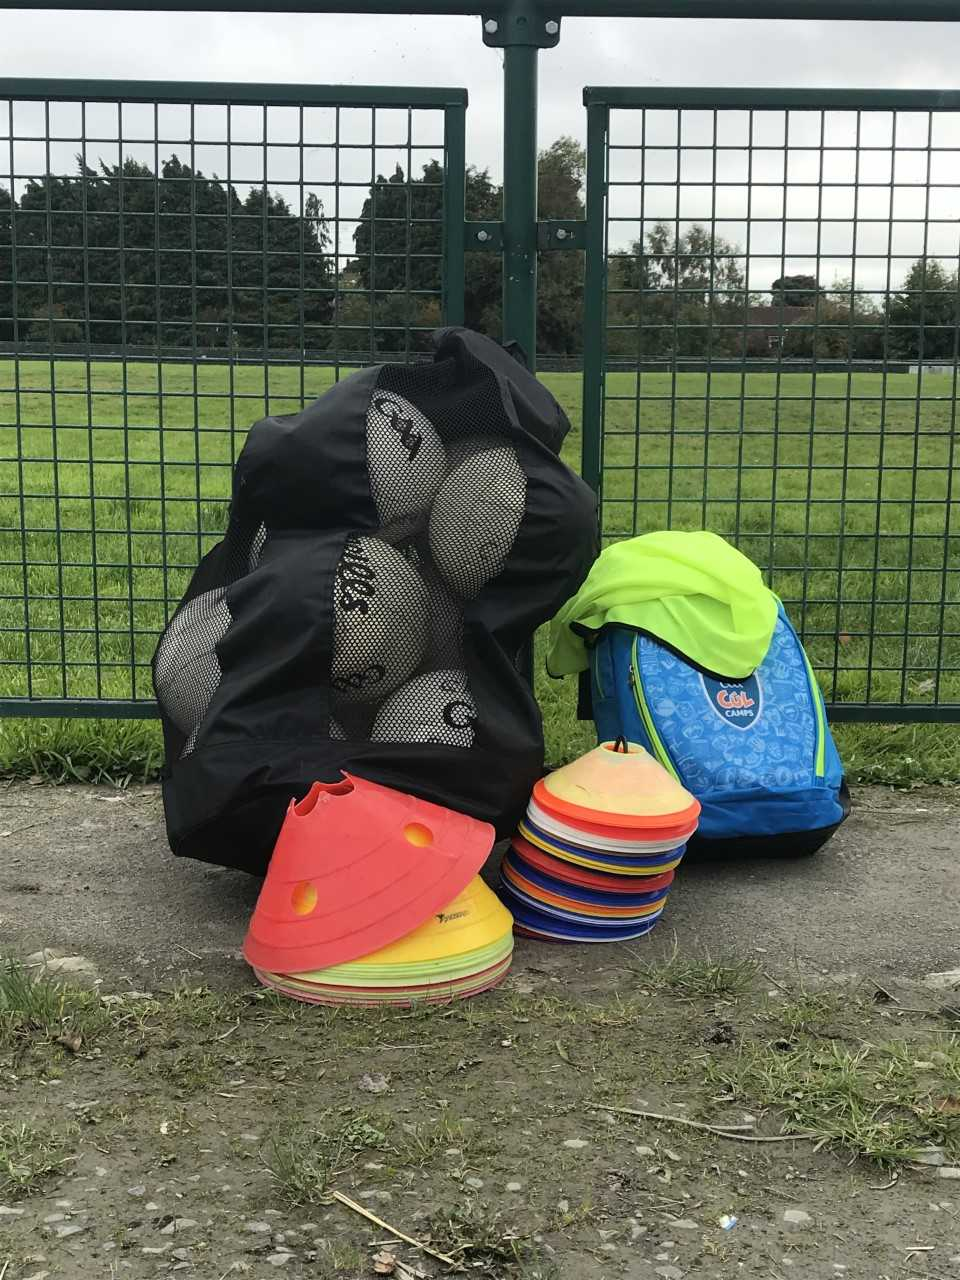 Club Player Development Programme